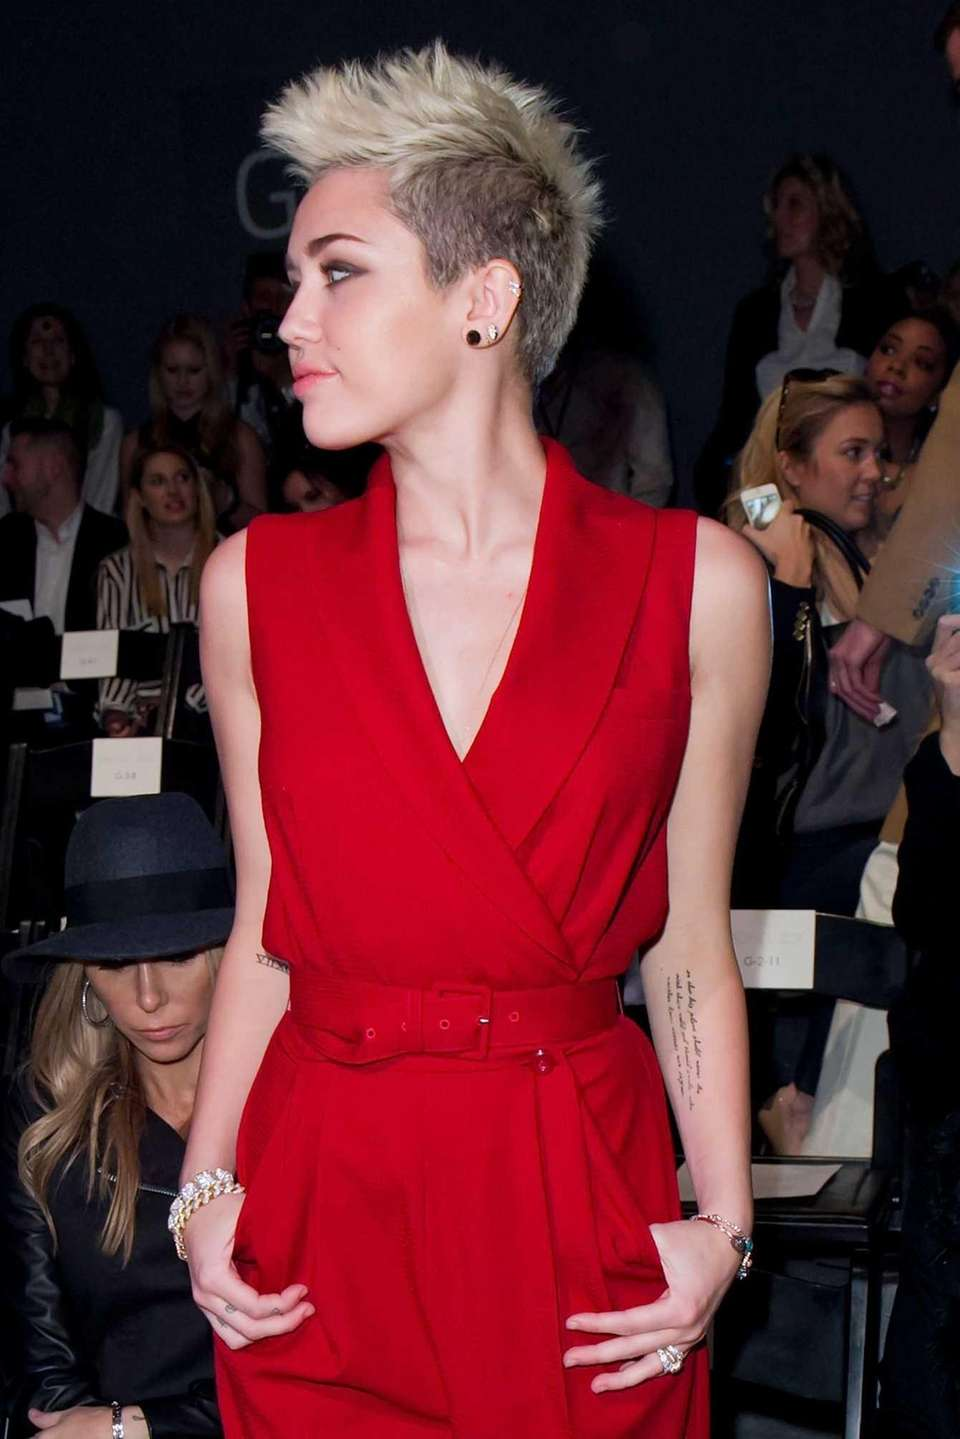 Miley Cyrus attends the Fall 2013 Rachel Zoe